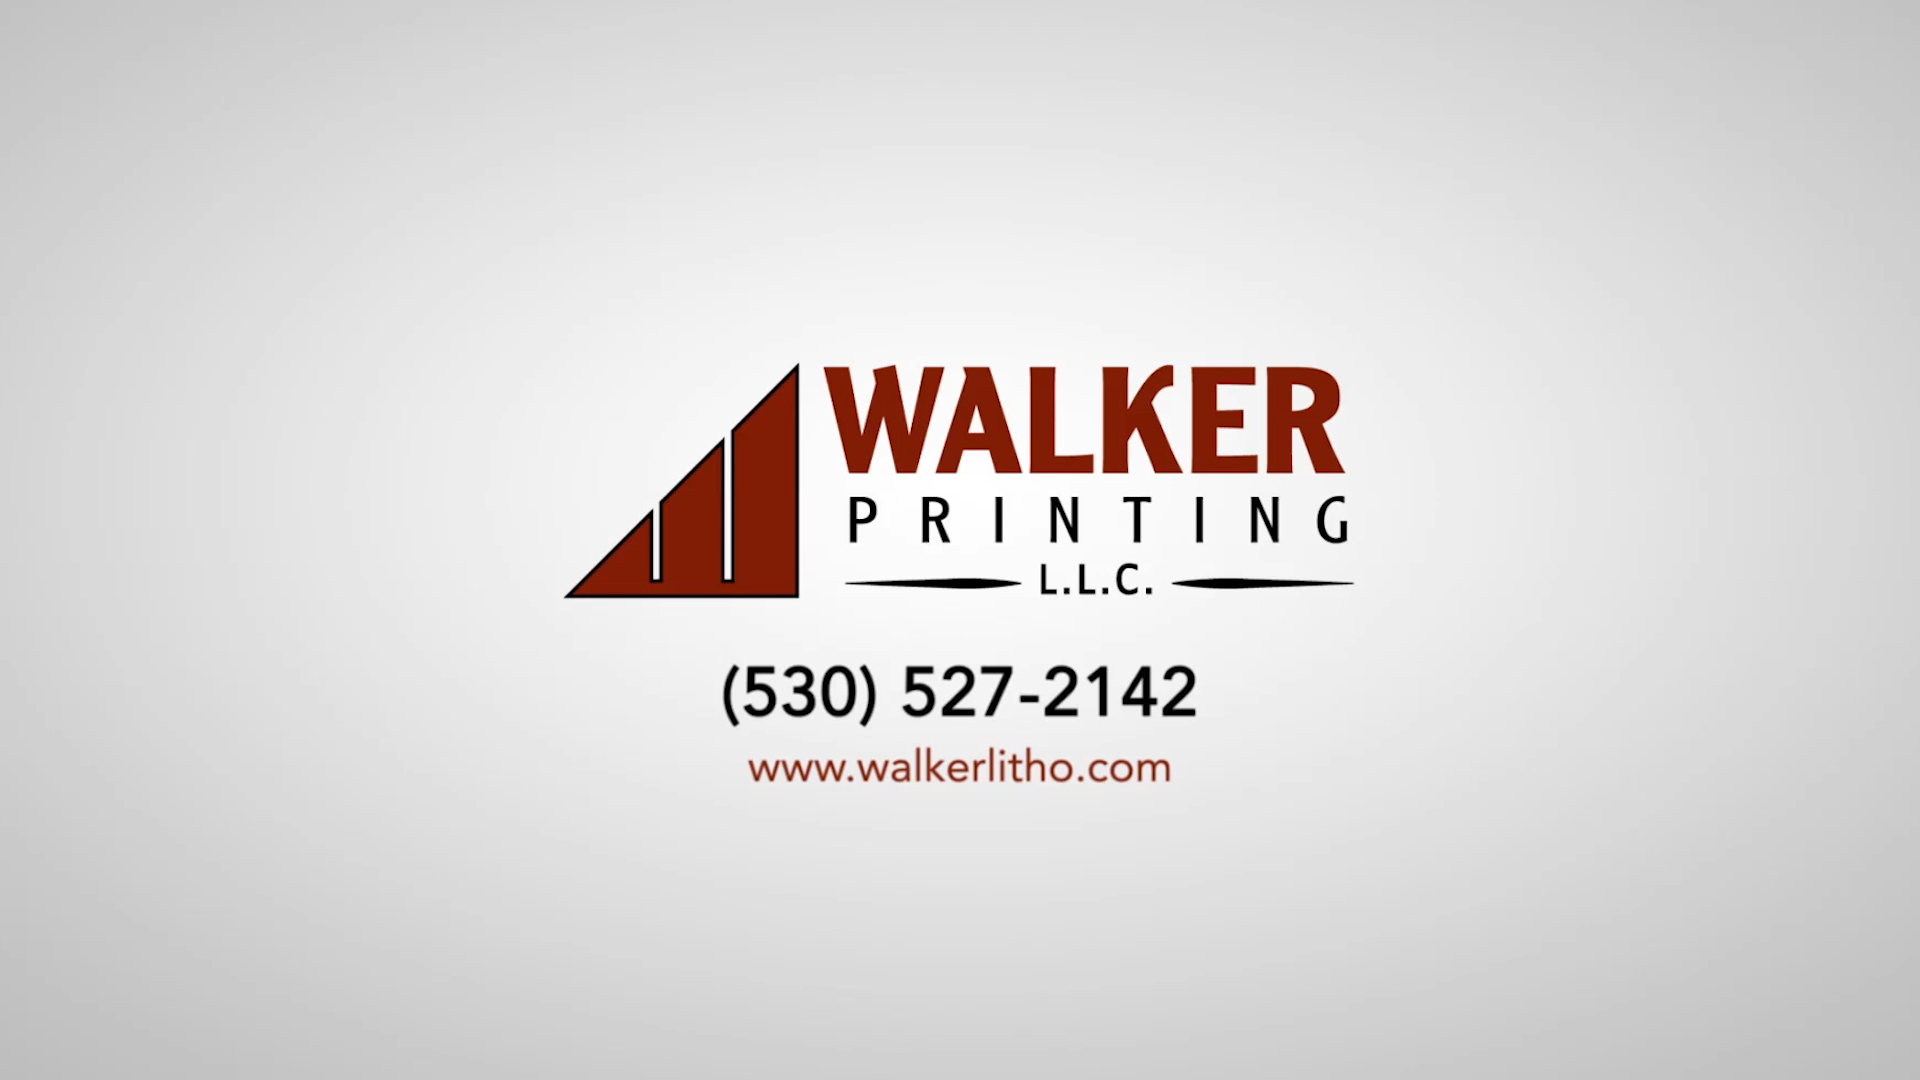 Walker Printing has provided top notch printing services in